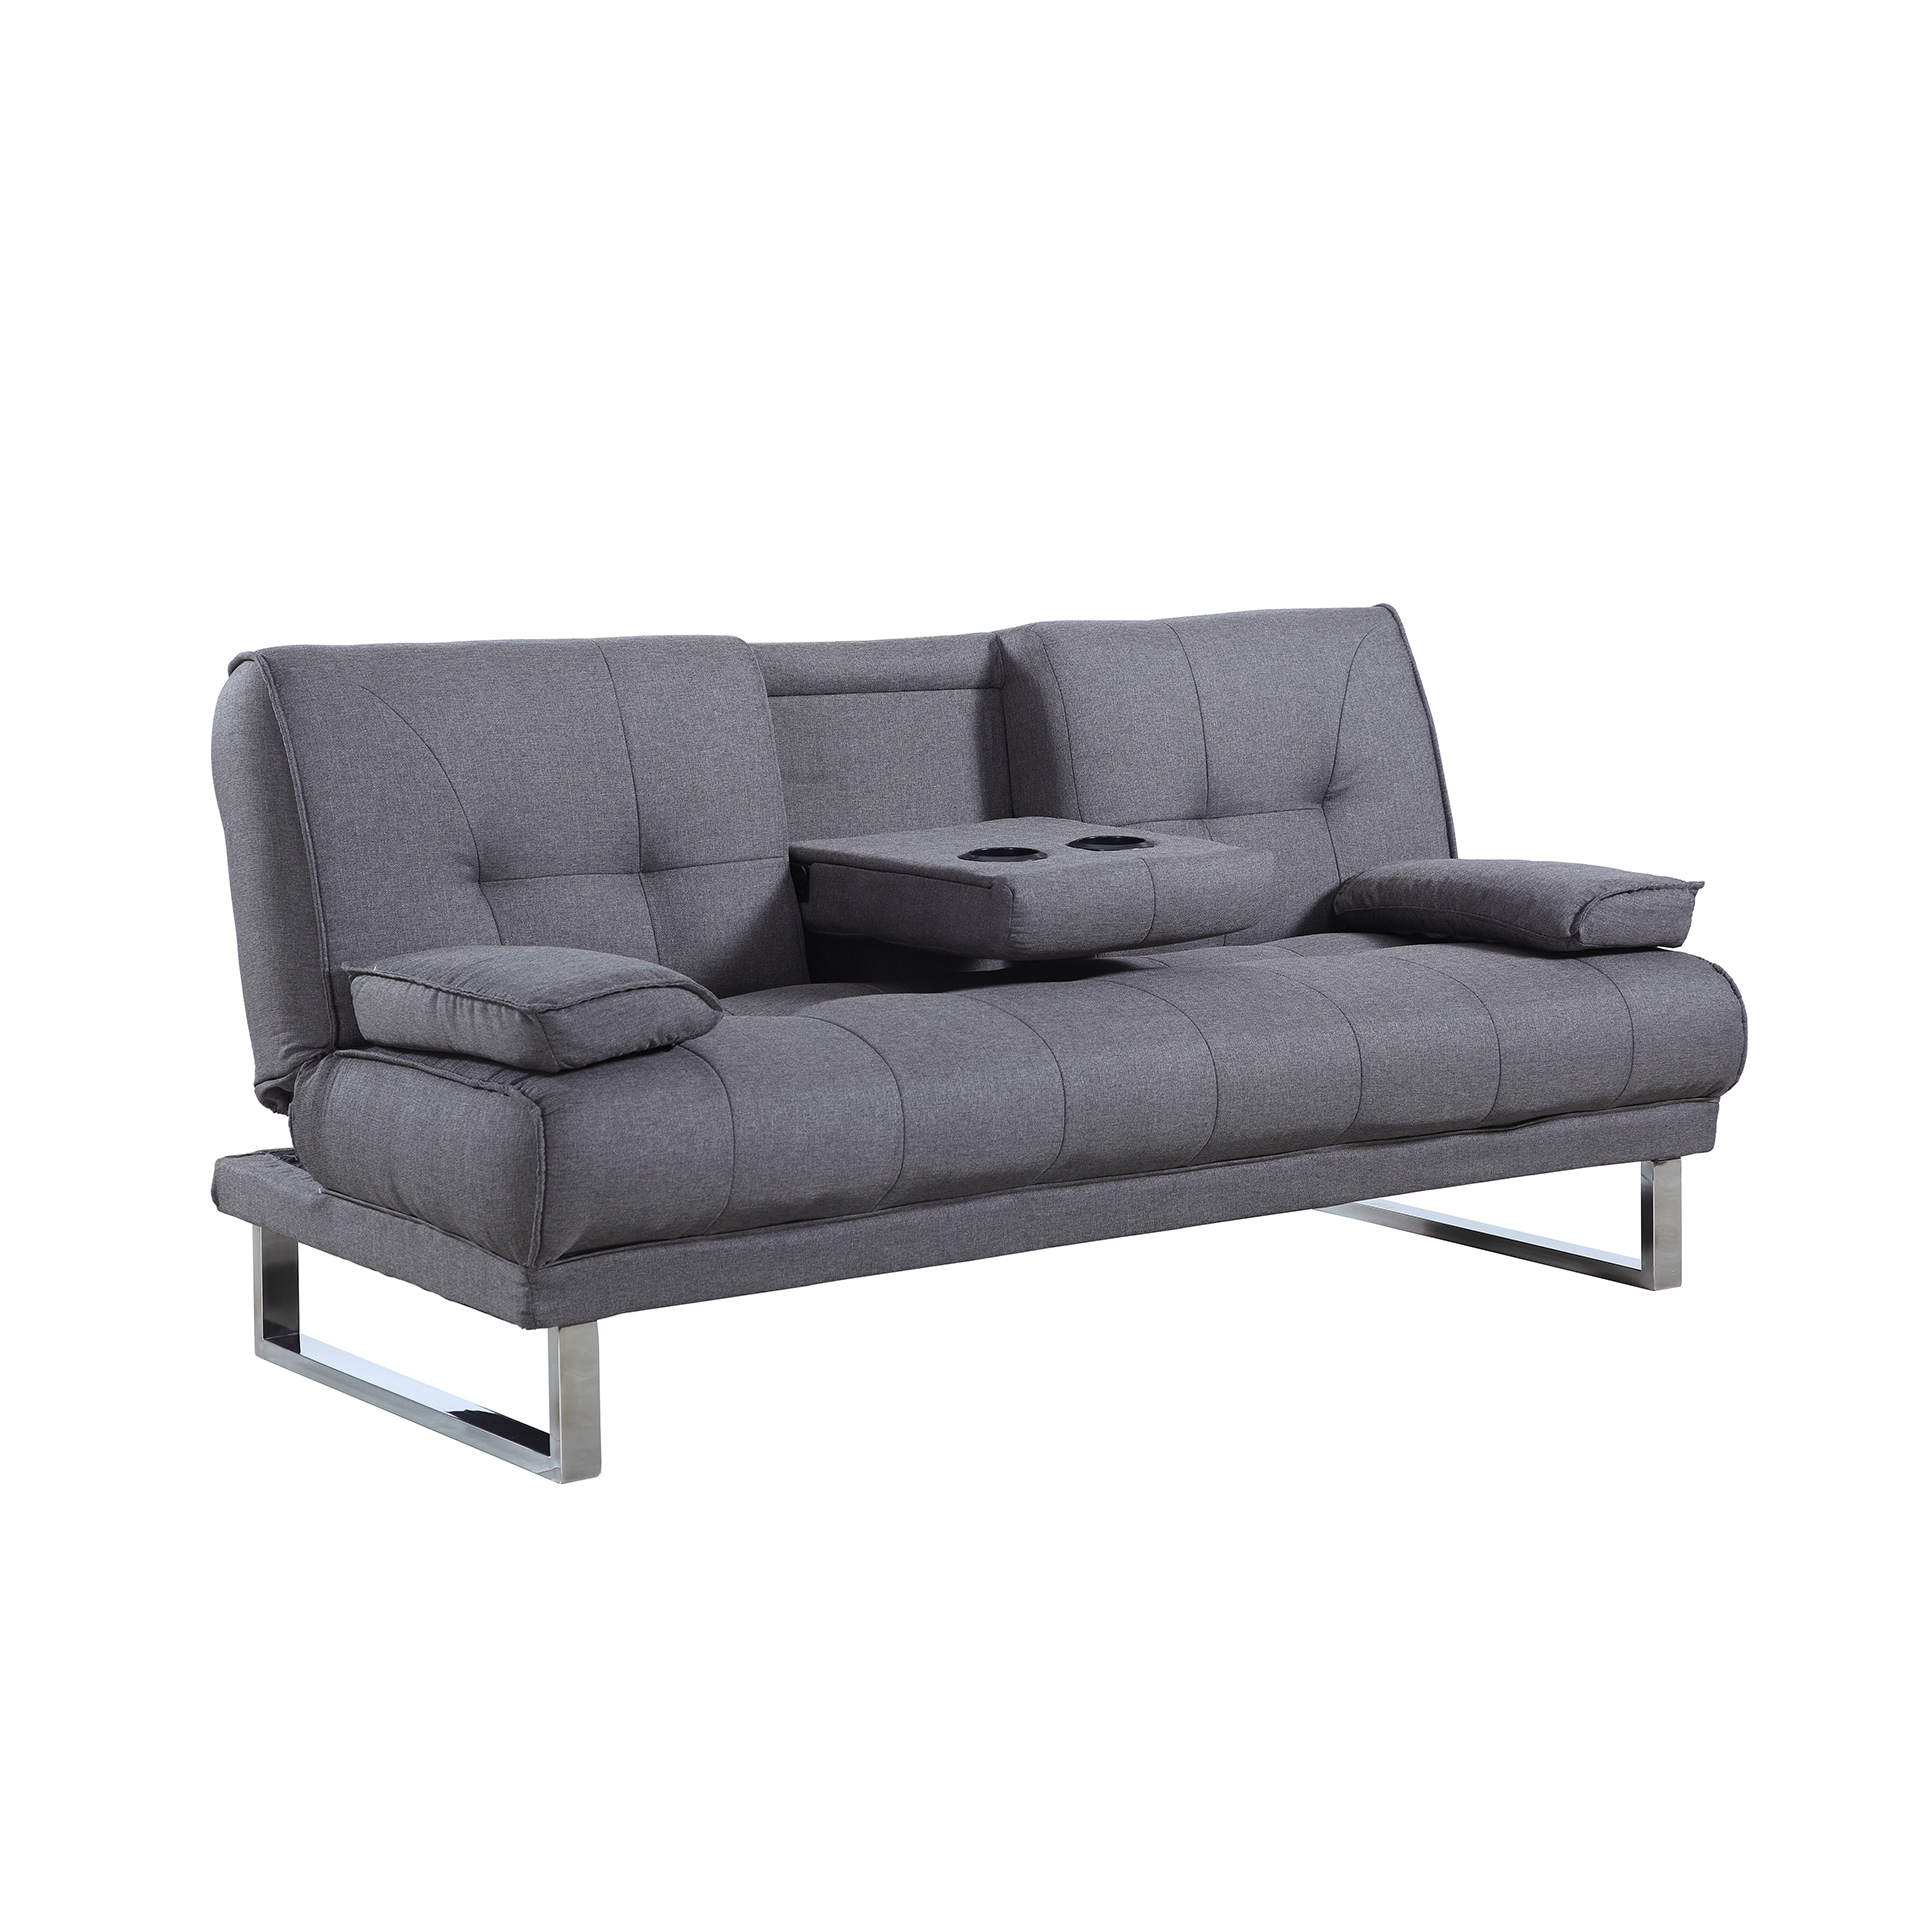 Samson sofa bed furniture store manila philippines urban for Sofa bed philippines